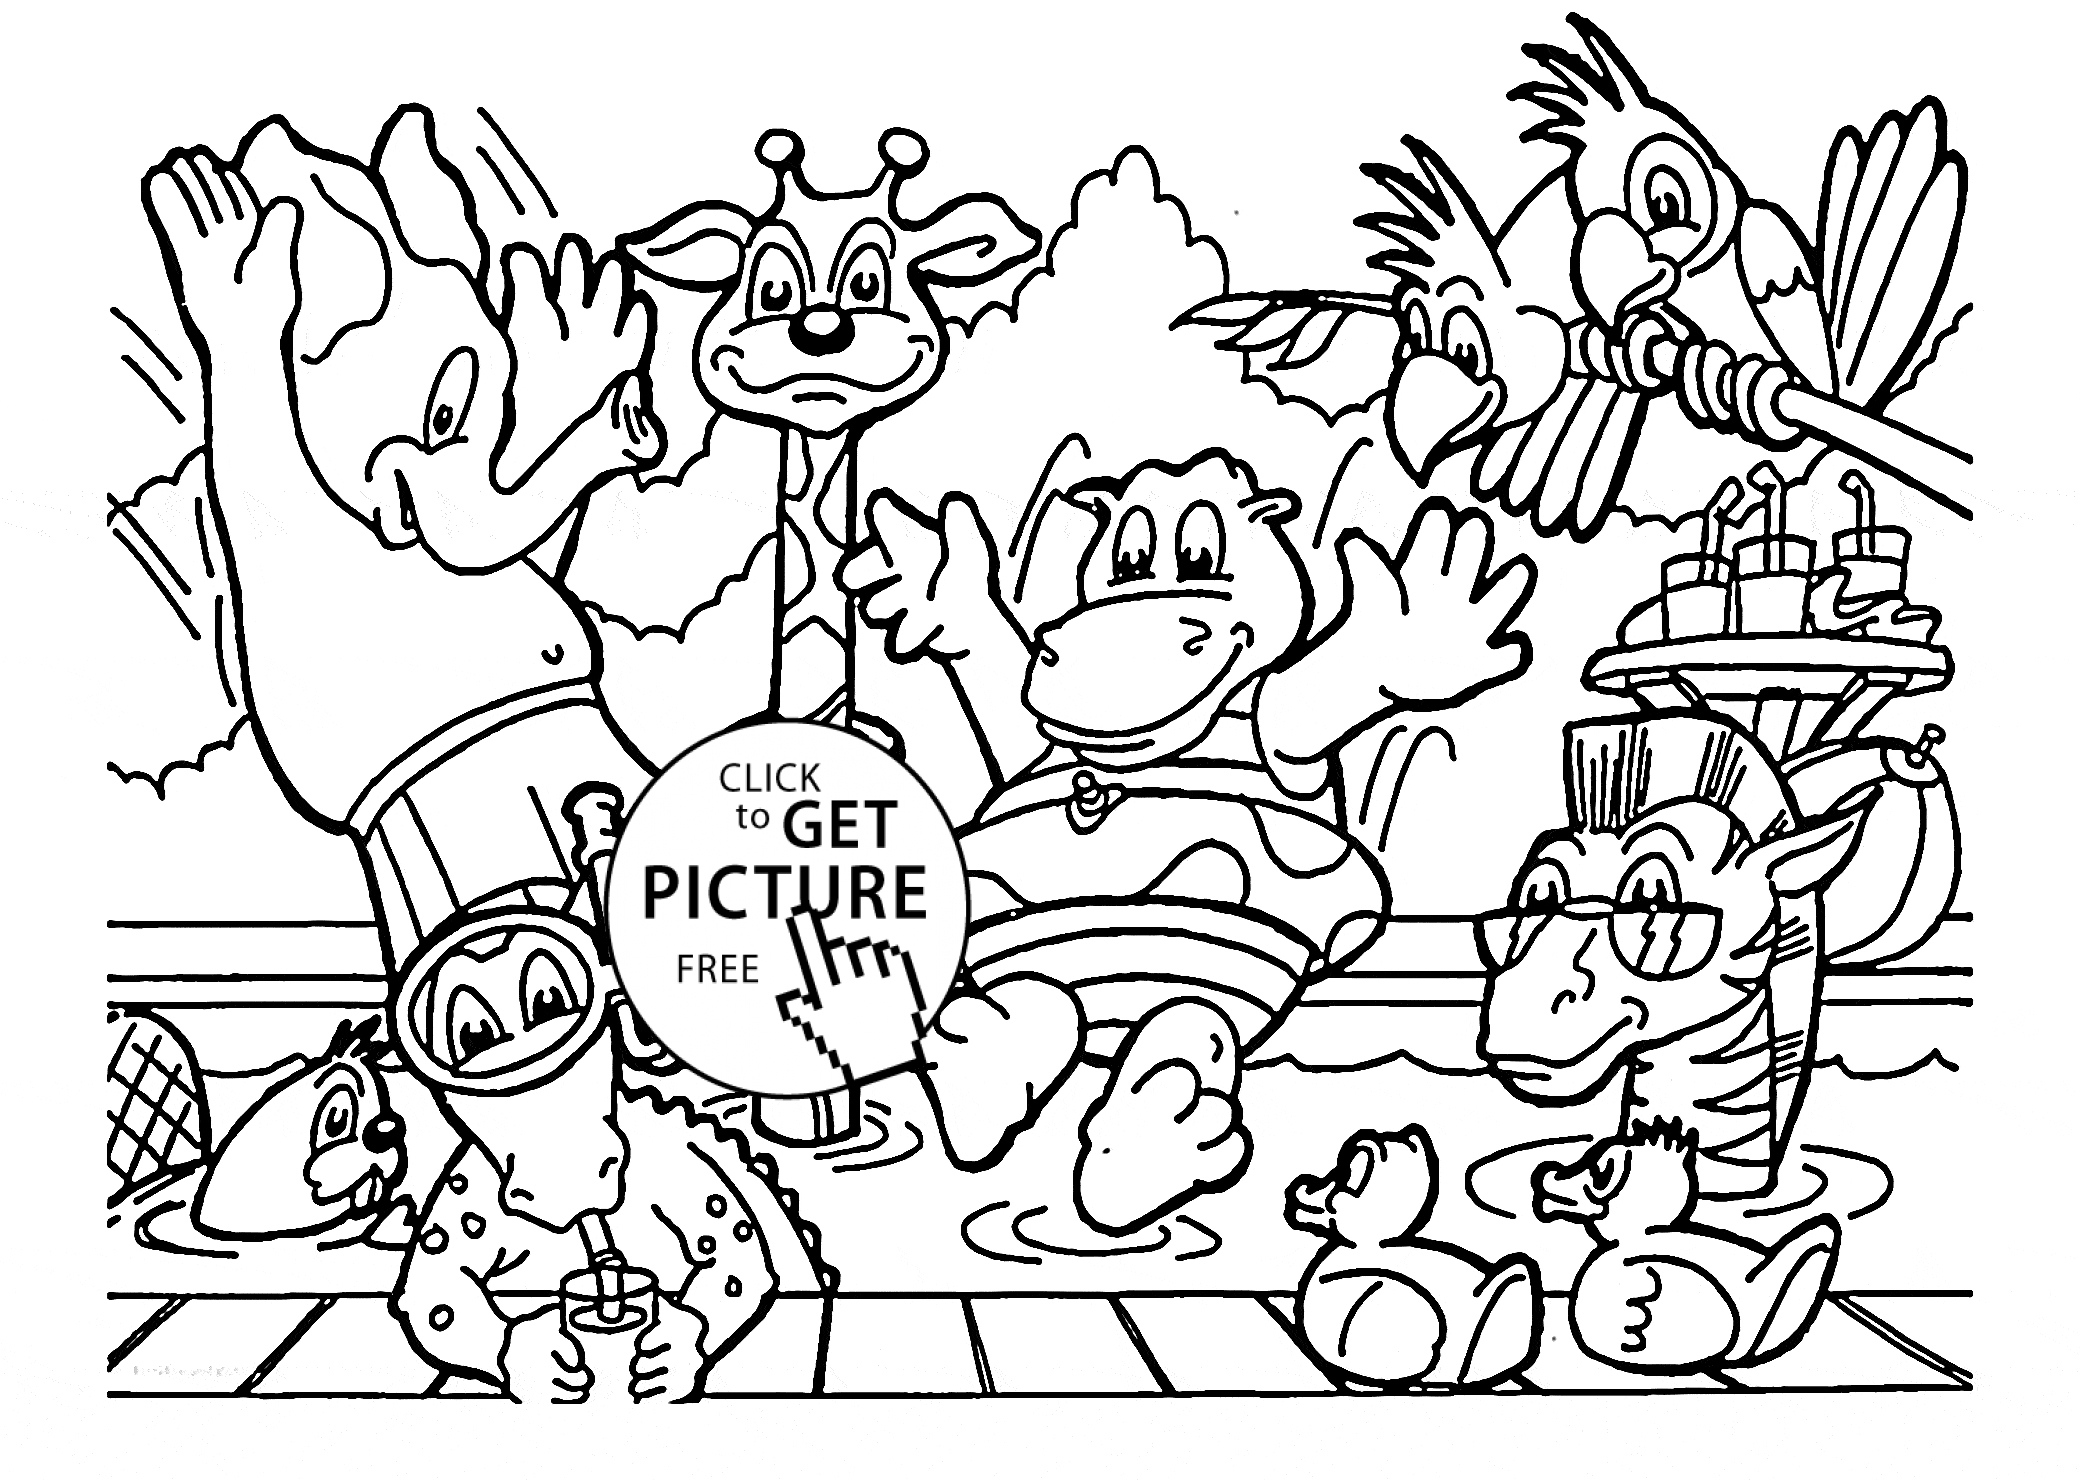 Zoo Animals Coloring Pages Zoo Animals Coloring Pages Elegant Photos Free Ba Animal Coloring